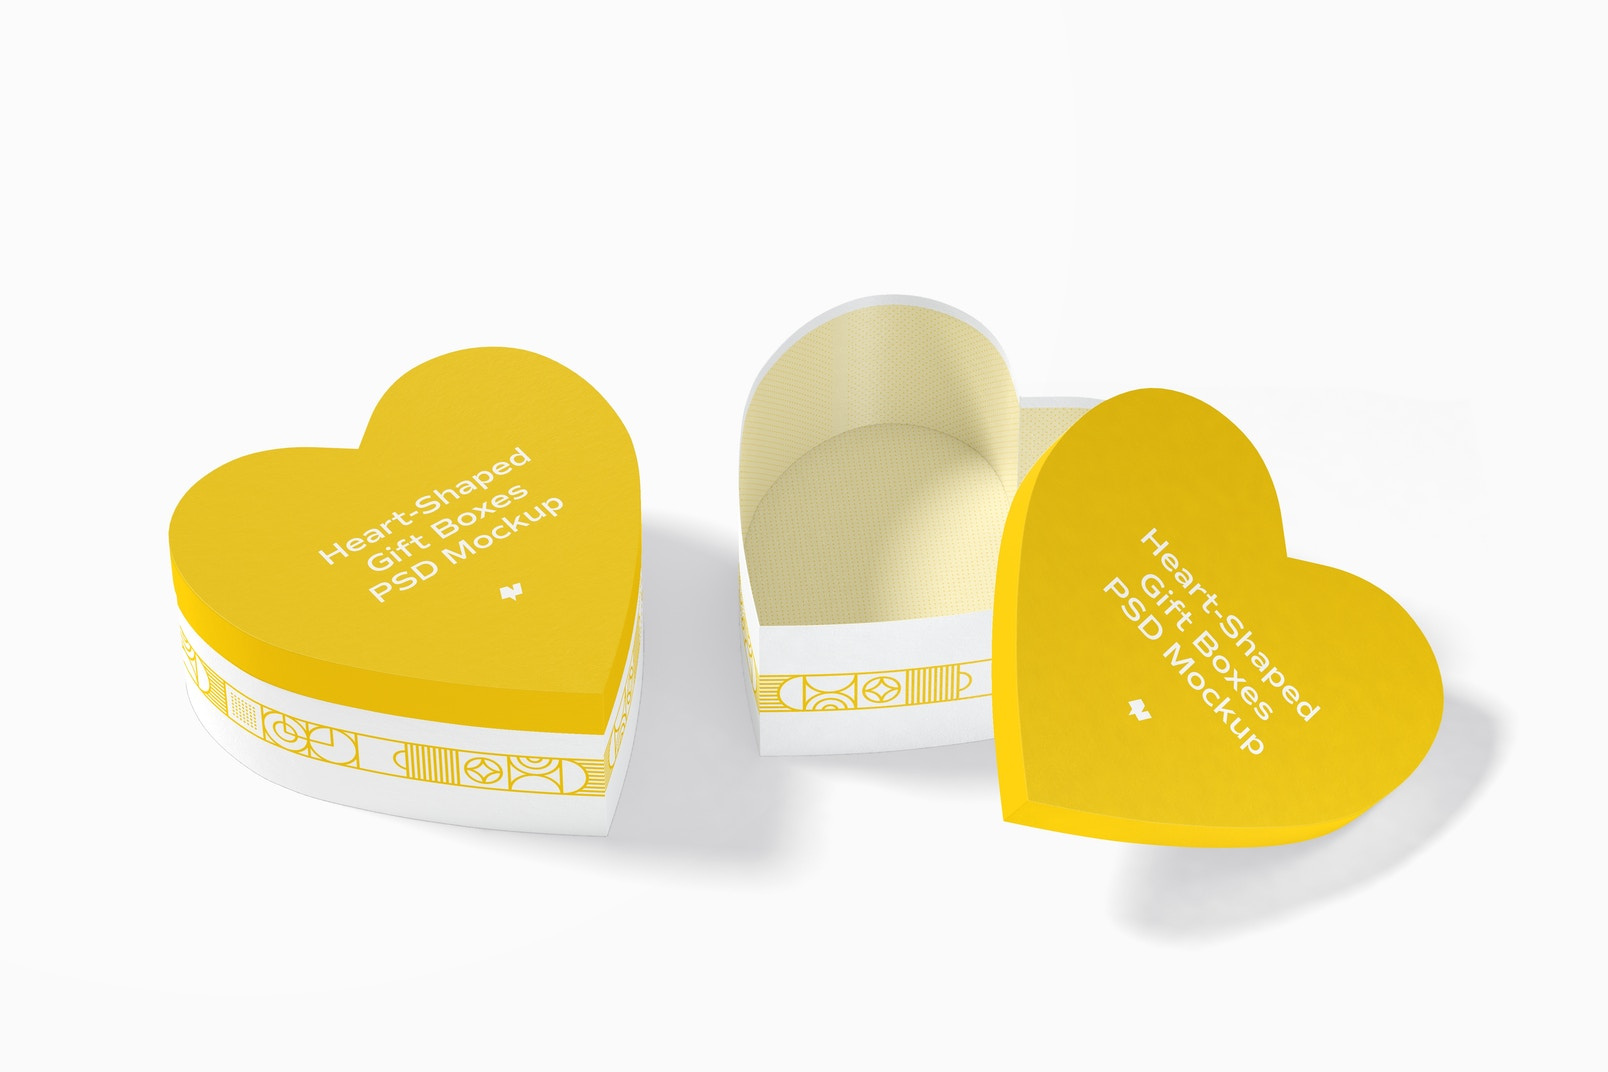 Heart-Shaped Gift Boxes Mockup, Closed and Opened